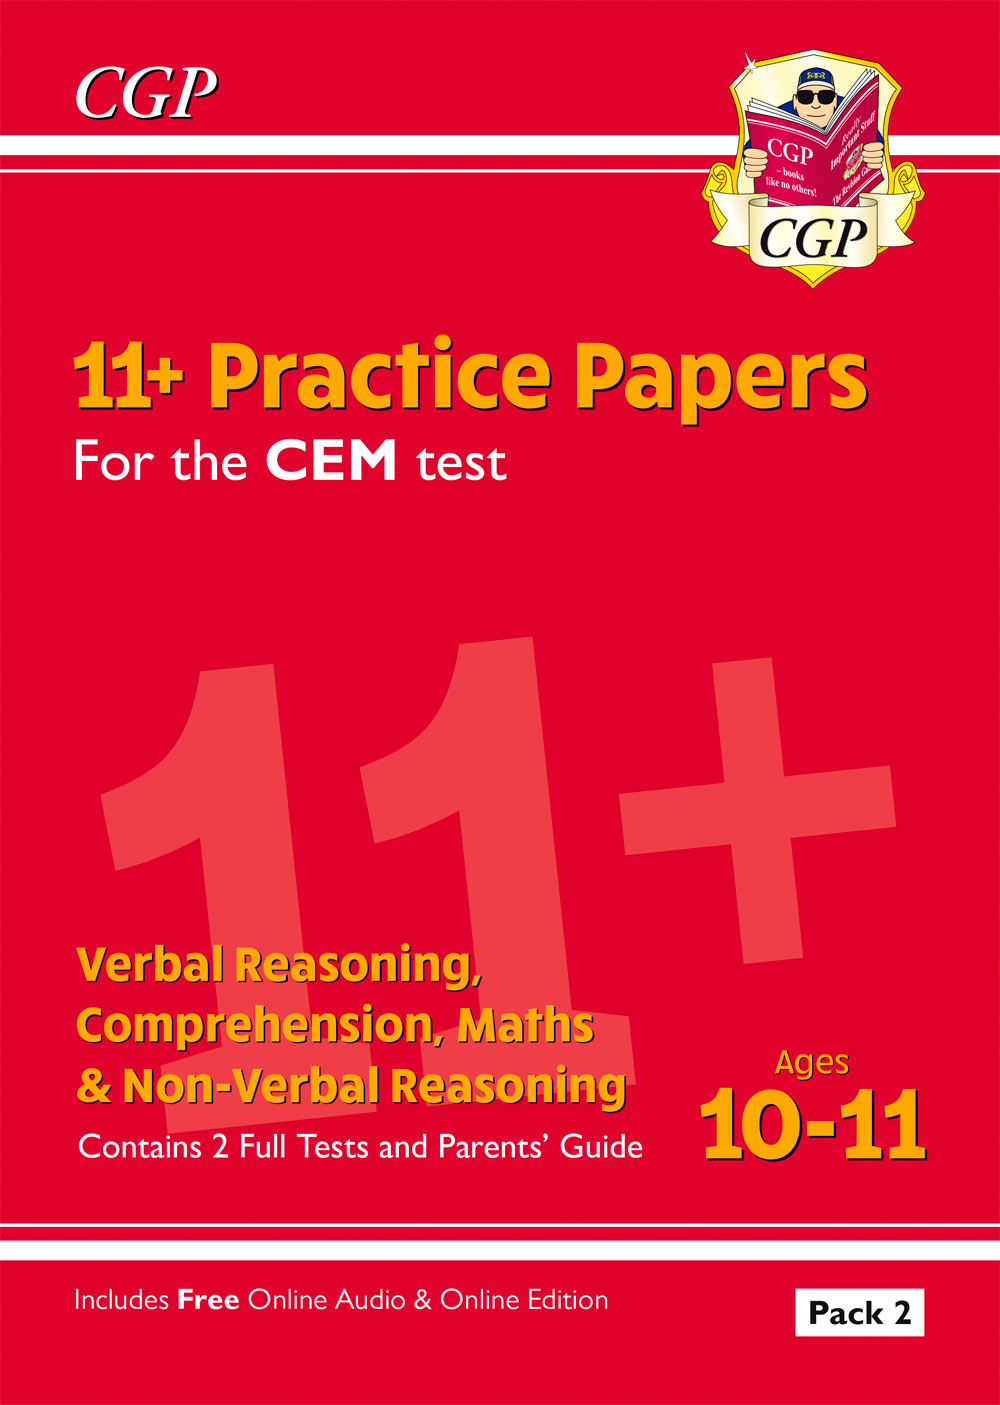 ELP2DE2 - New 11+ CEM Practice Papers: Ages 10-11 - Pack 2 (with Parents' Guide & Online Edition)